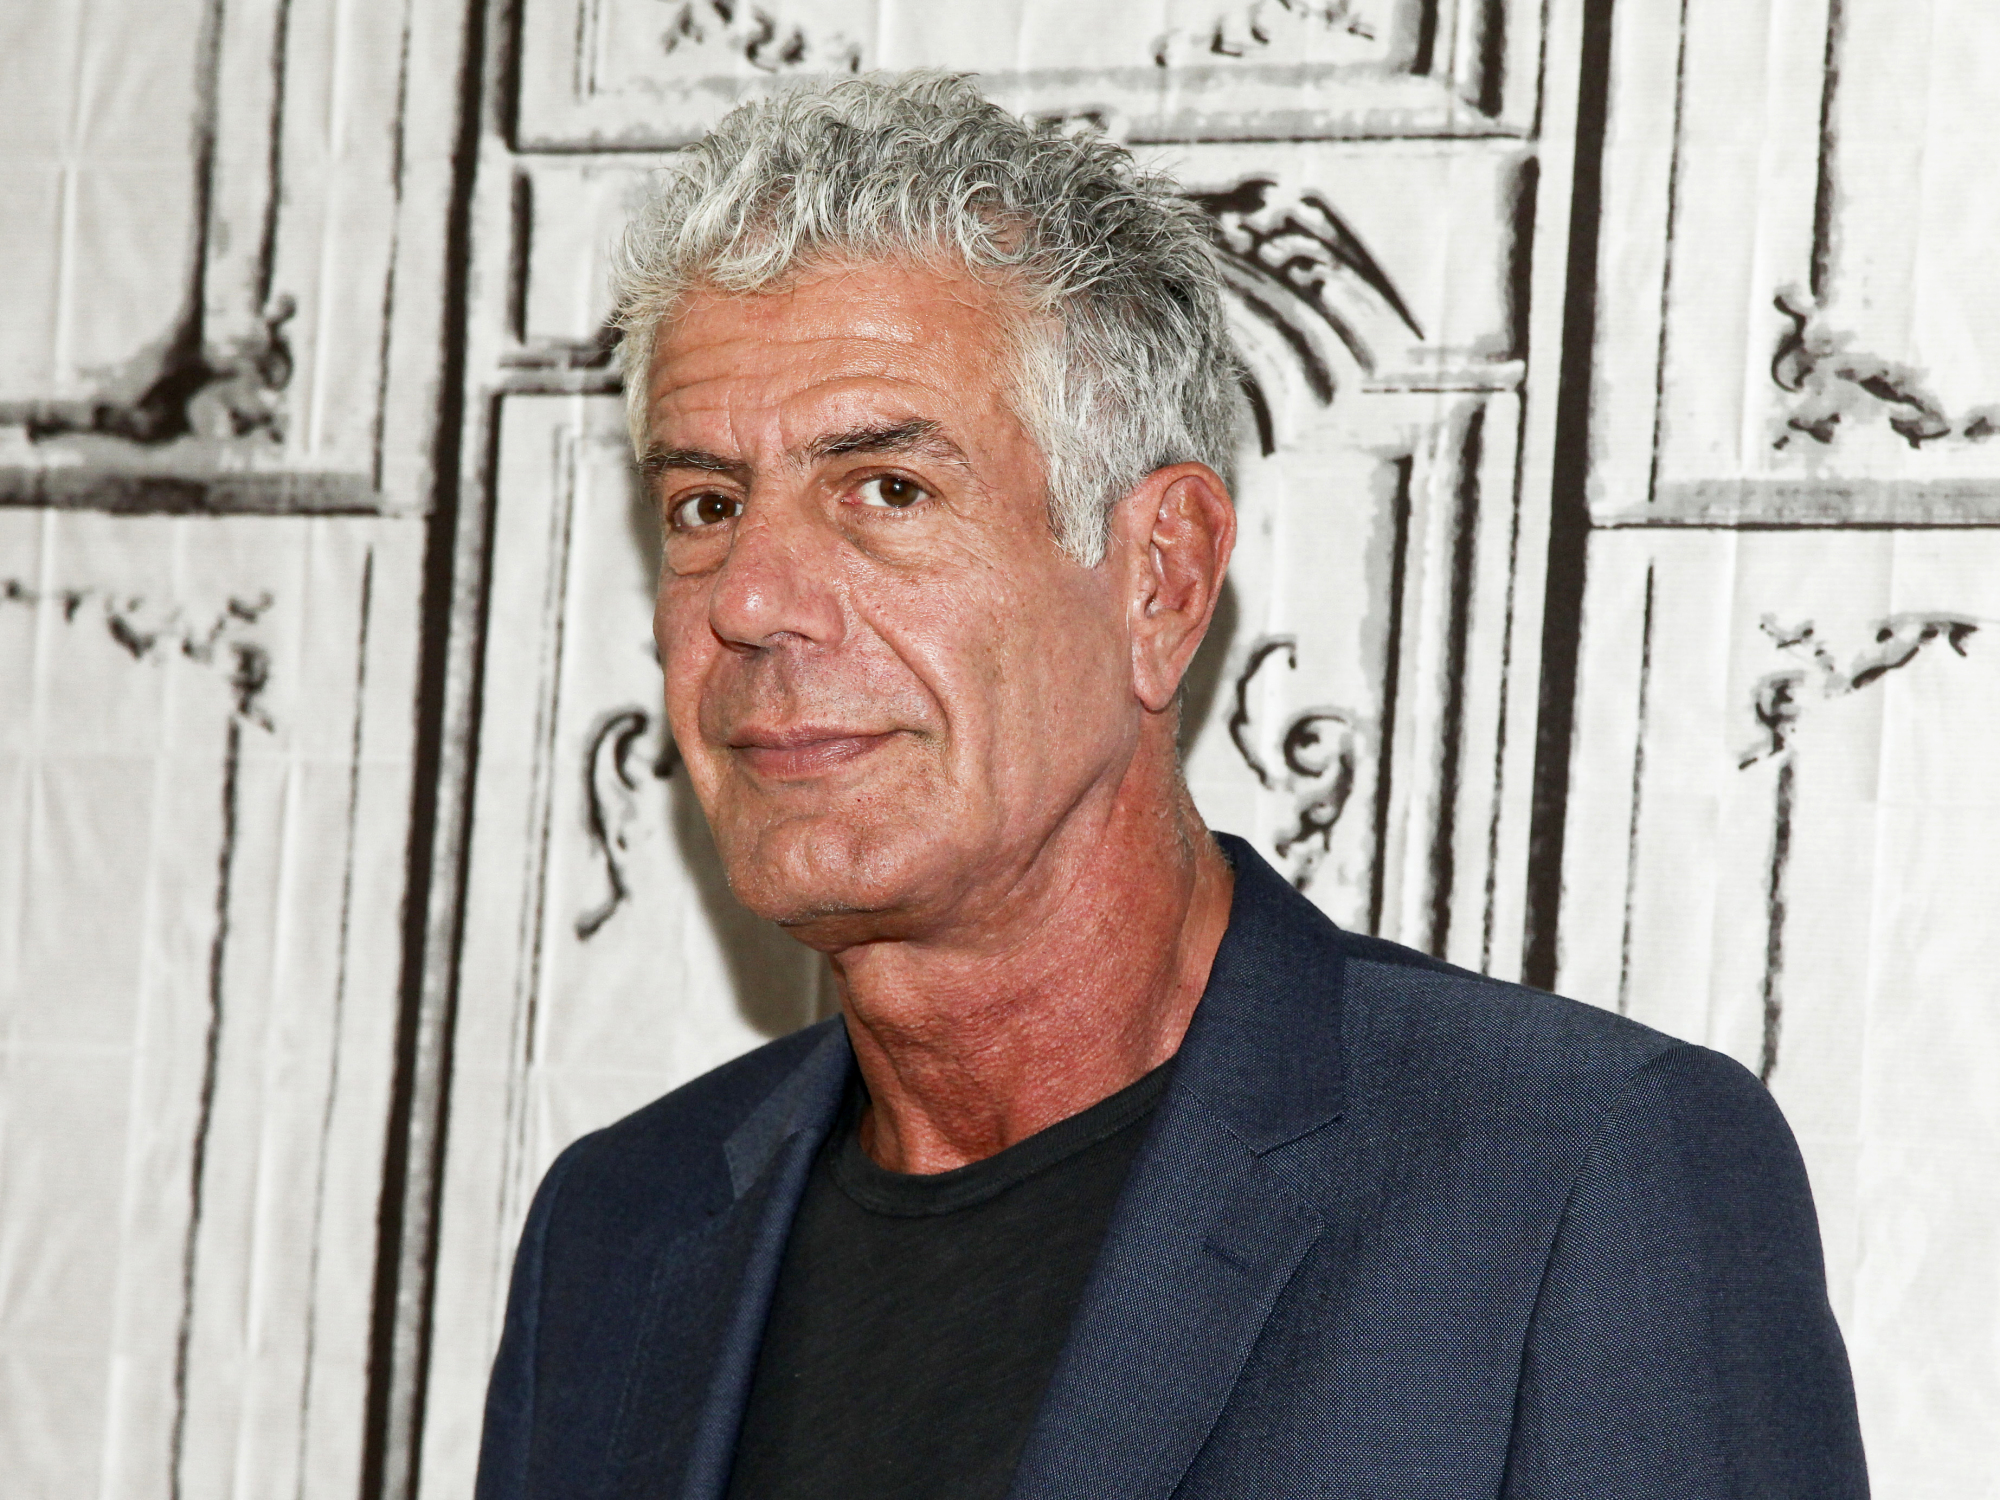 Anthony Bourdain participates in the BUILD Speaker Series to discuss the online film series 'Raw Craft' at AOL Studios in New York in 2016. Celebrity chef Bourdain's TV show has angered some Newfoundlanders after using a certain diminutive nickname many find offensive.   ANDY KROPA / INVISION / VIA AP